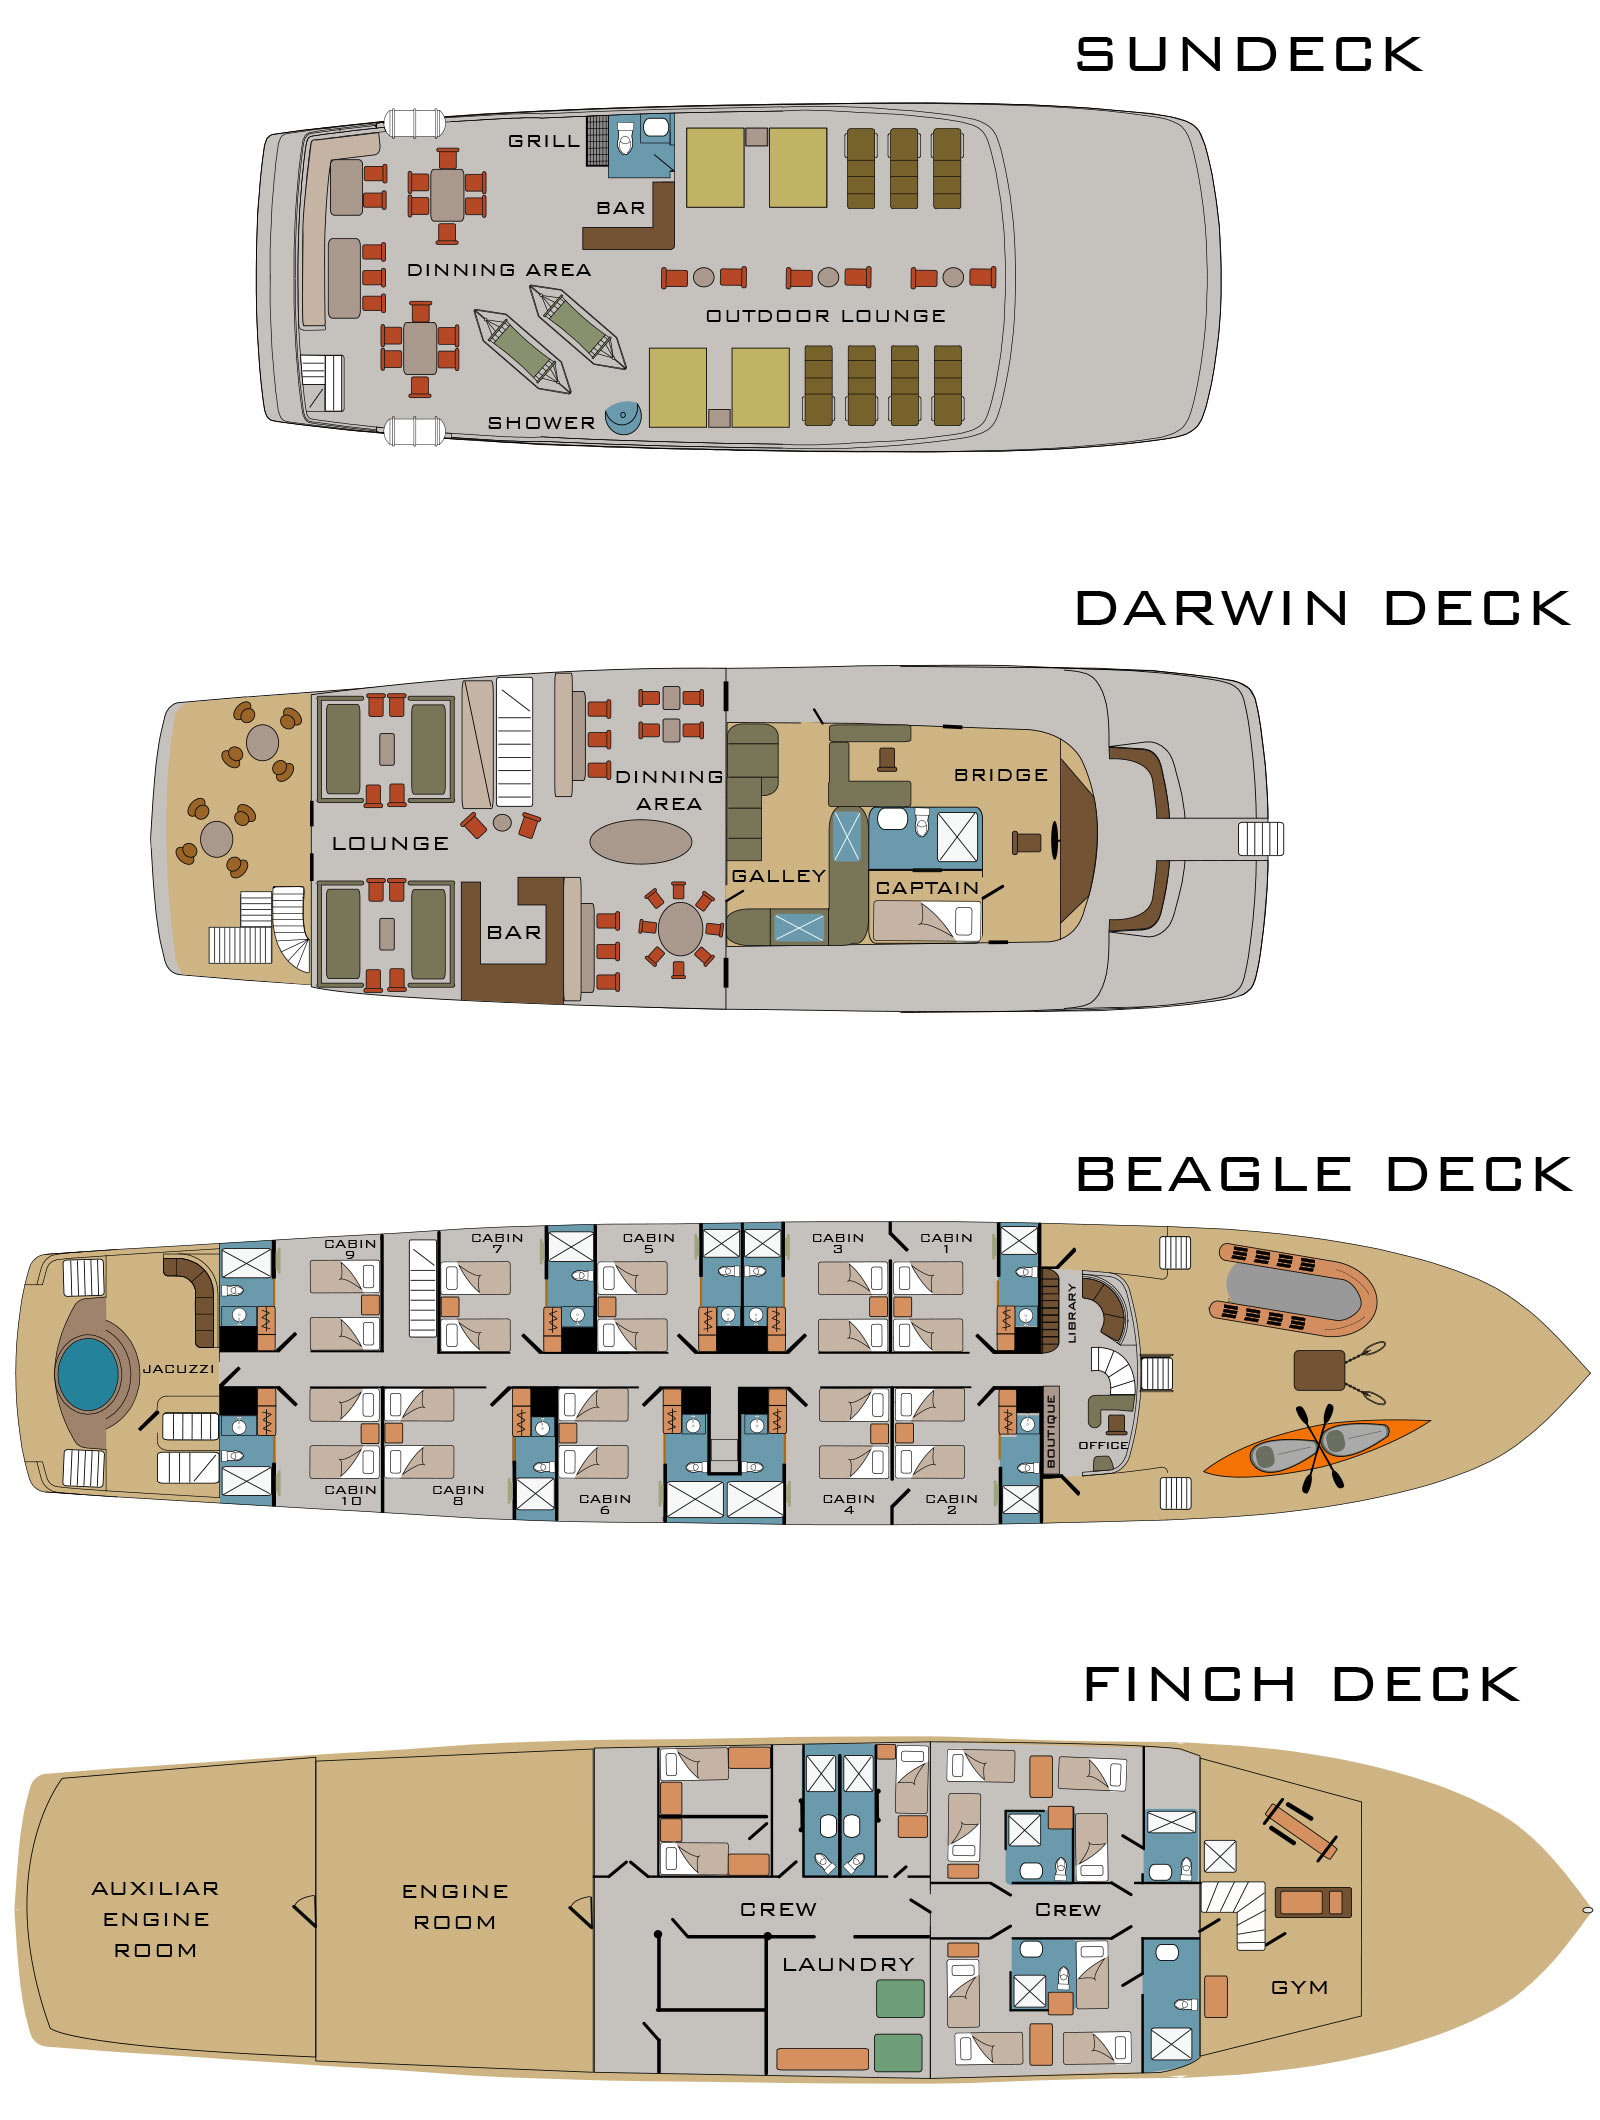 Cabin layout for Origin and Theory